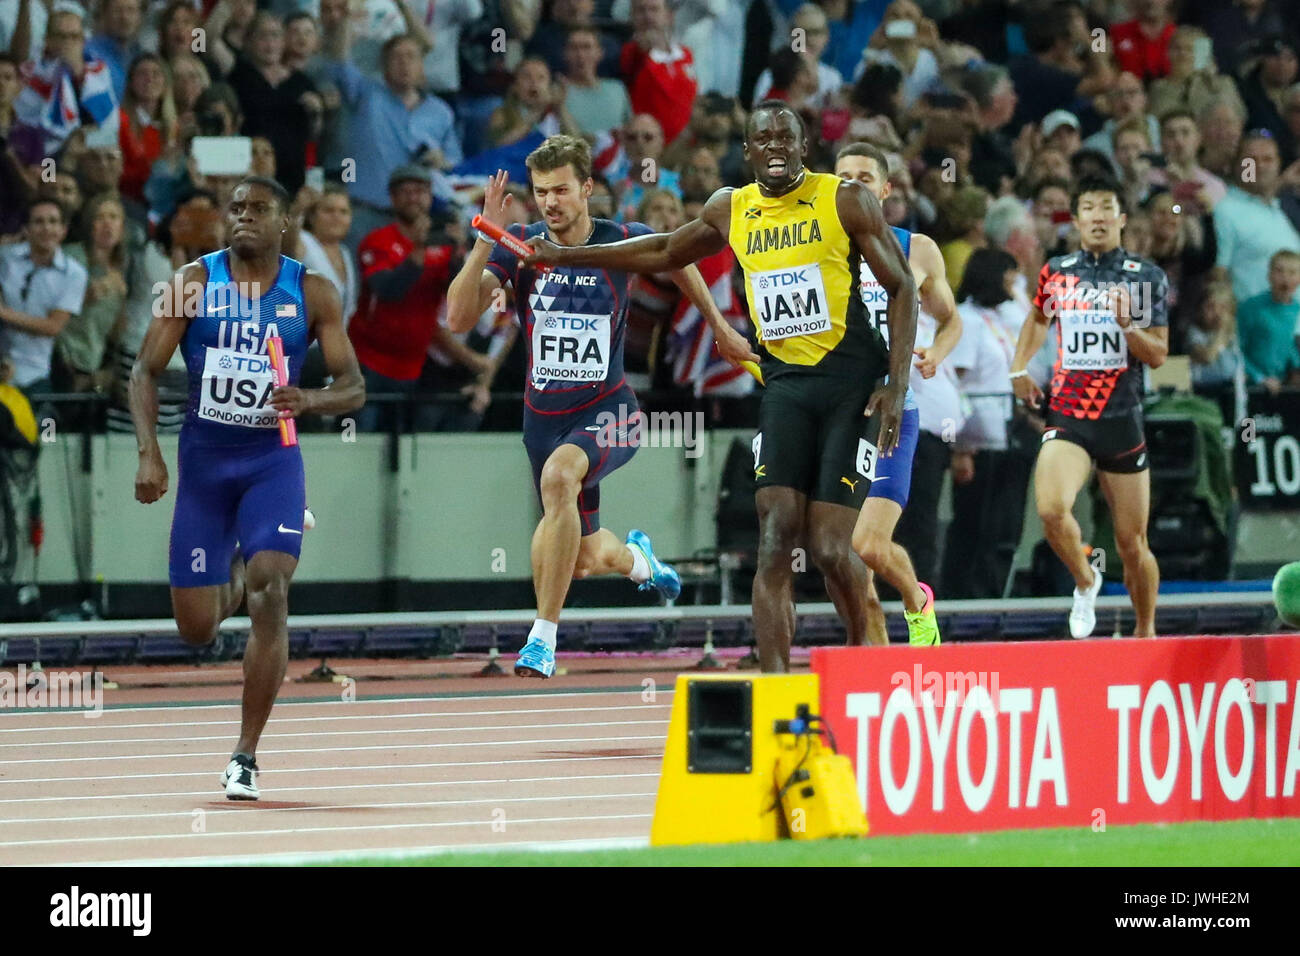 London, UK. 12th Aug, 2017. London, August 12 2017 . Usain Bolt, anchor for Jamaica, pulls up in in agony with a hamstring injury in the men's 4x 100m relay on day nine of the IAAF London 2017 world Championships at the London Stadium. Credit: Paul Davey/Alamy Live News - Stock Image